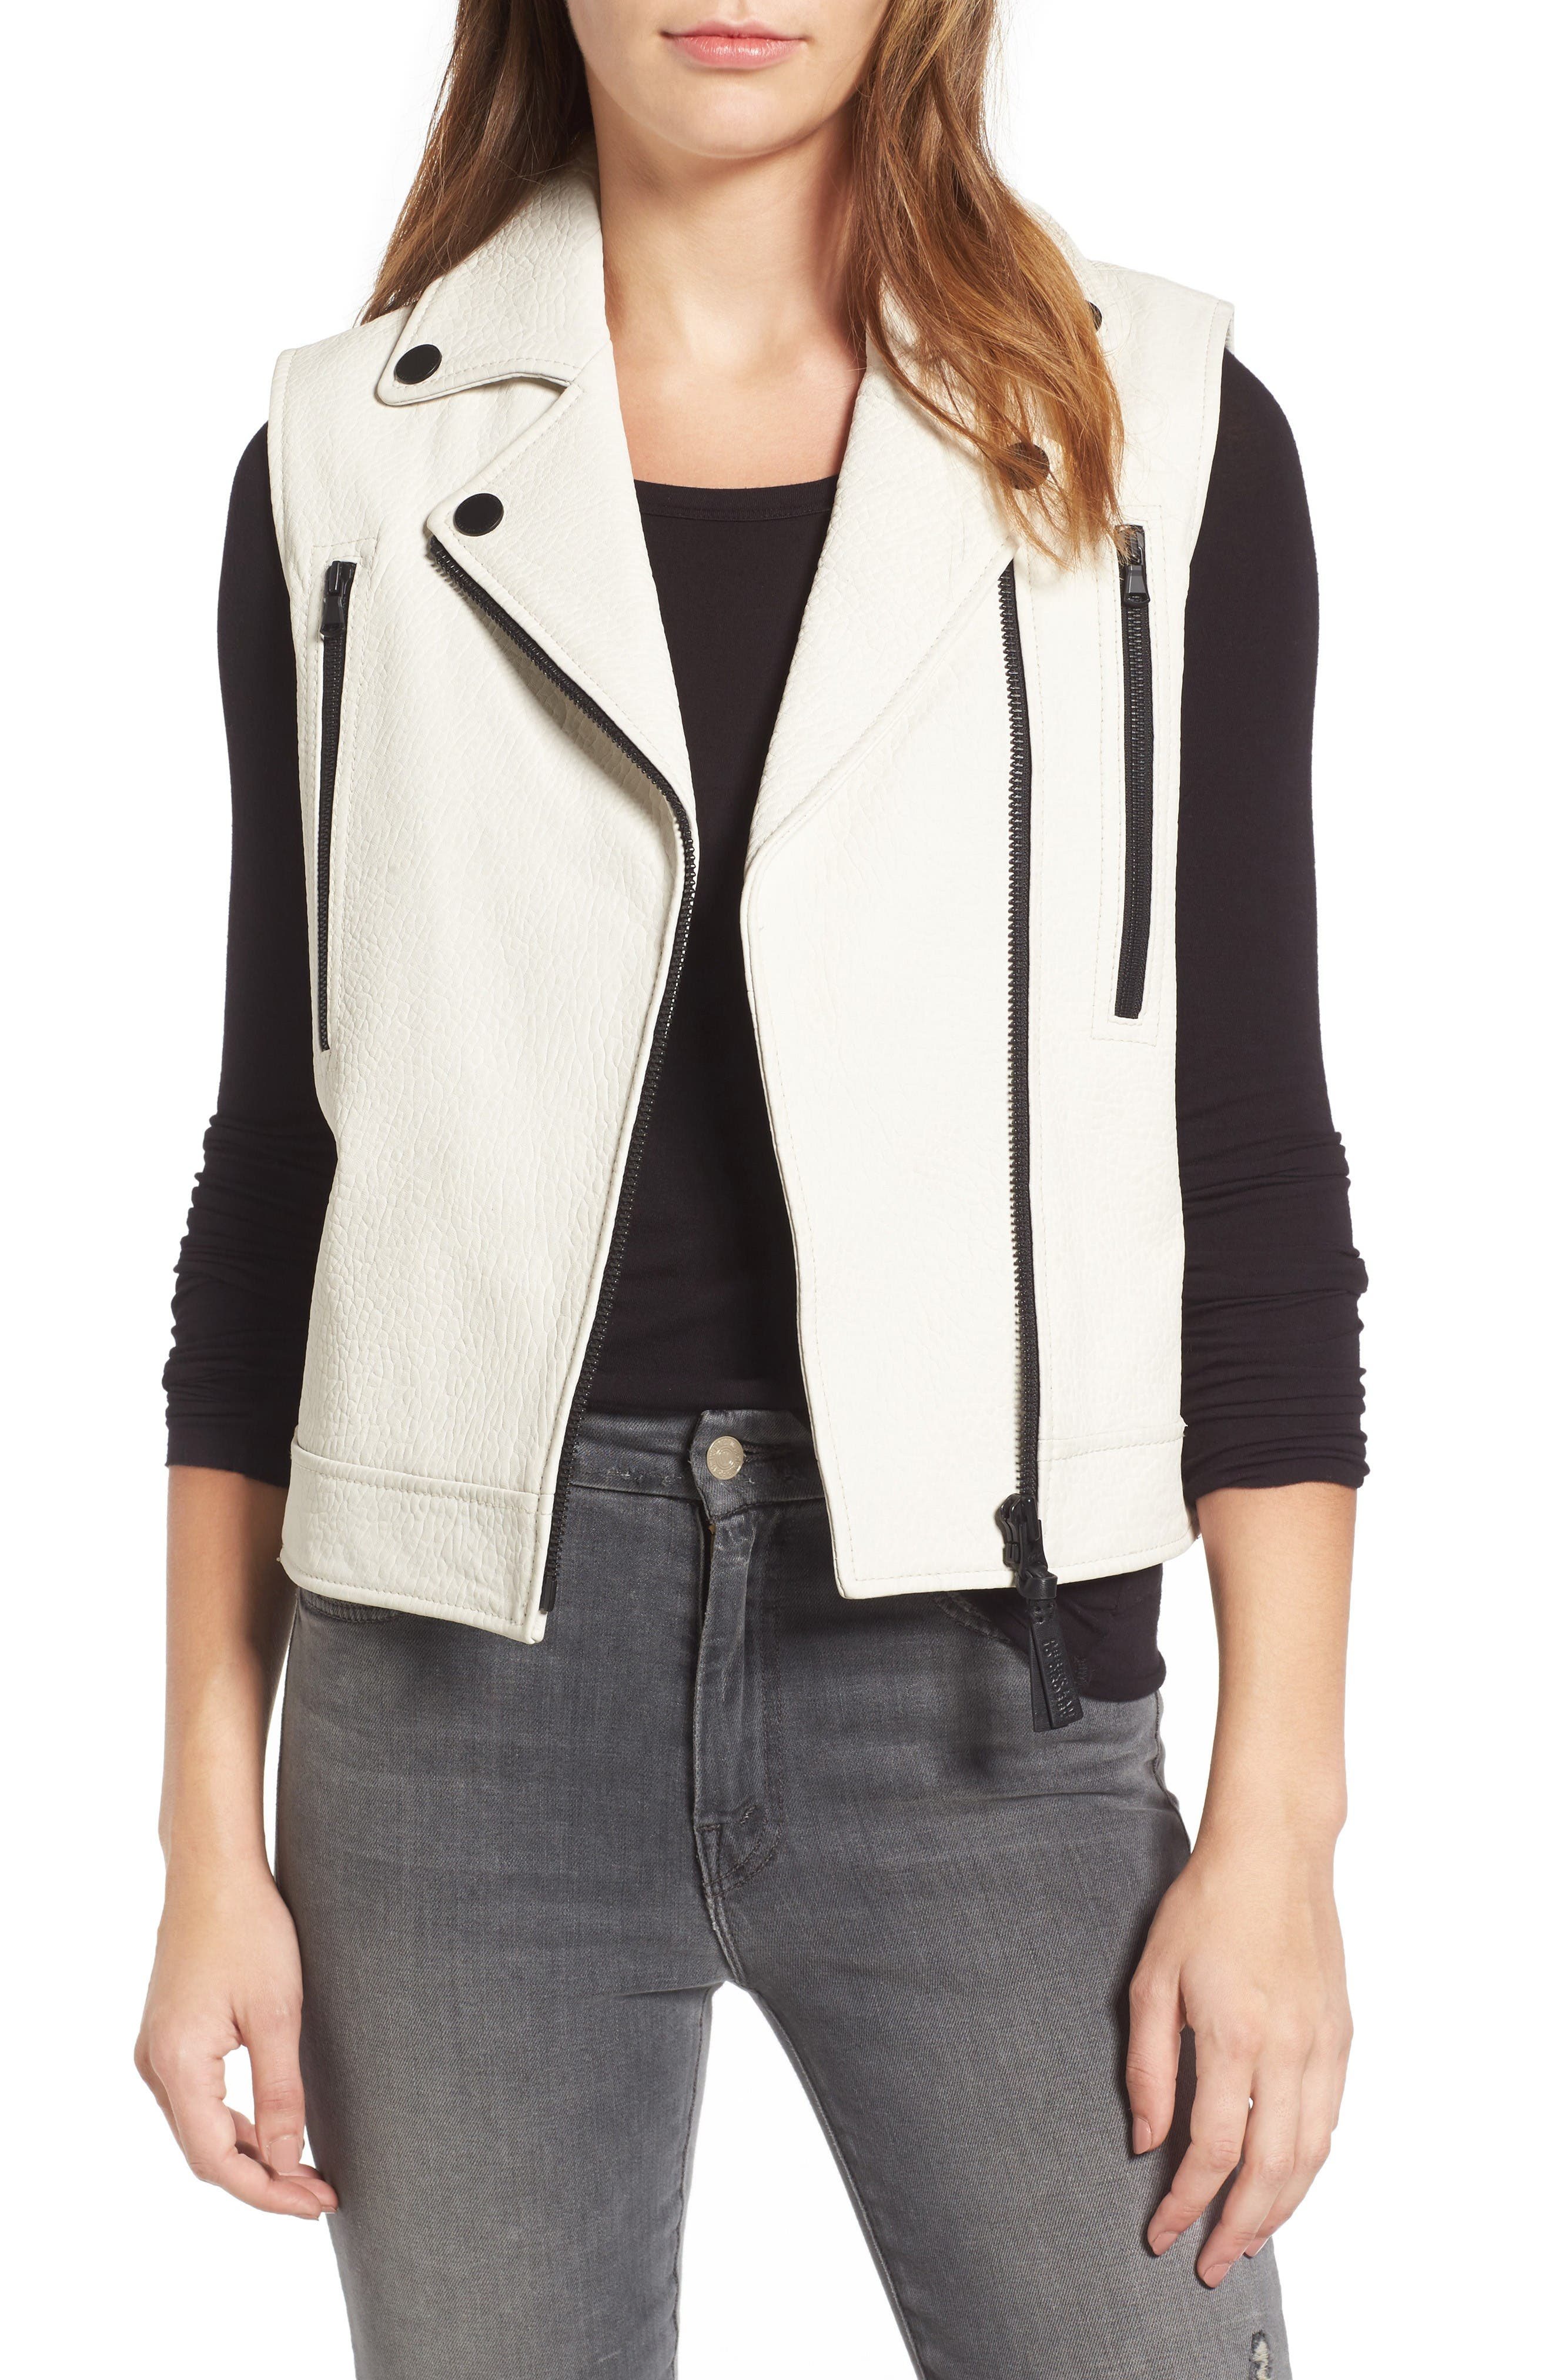 Derek Lam 10 Crosby Leather Moto Vest